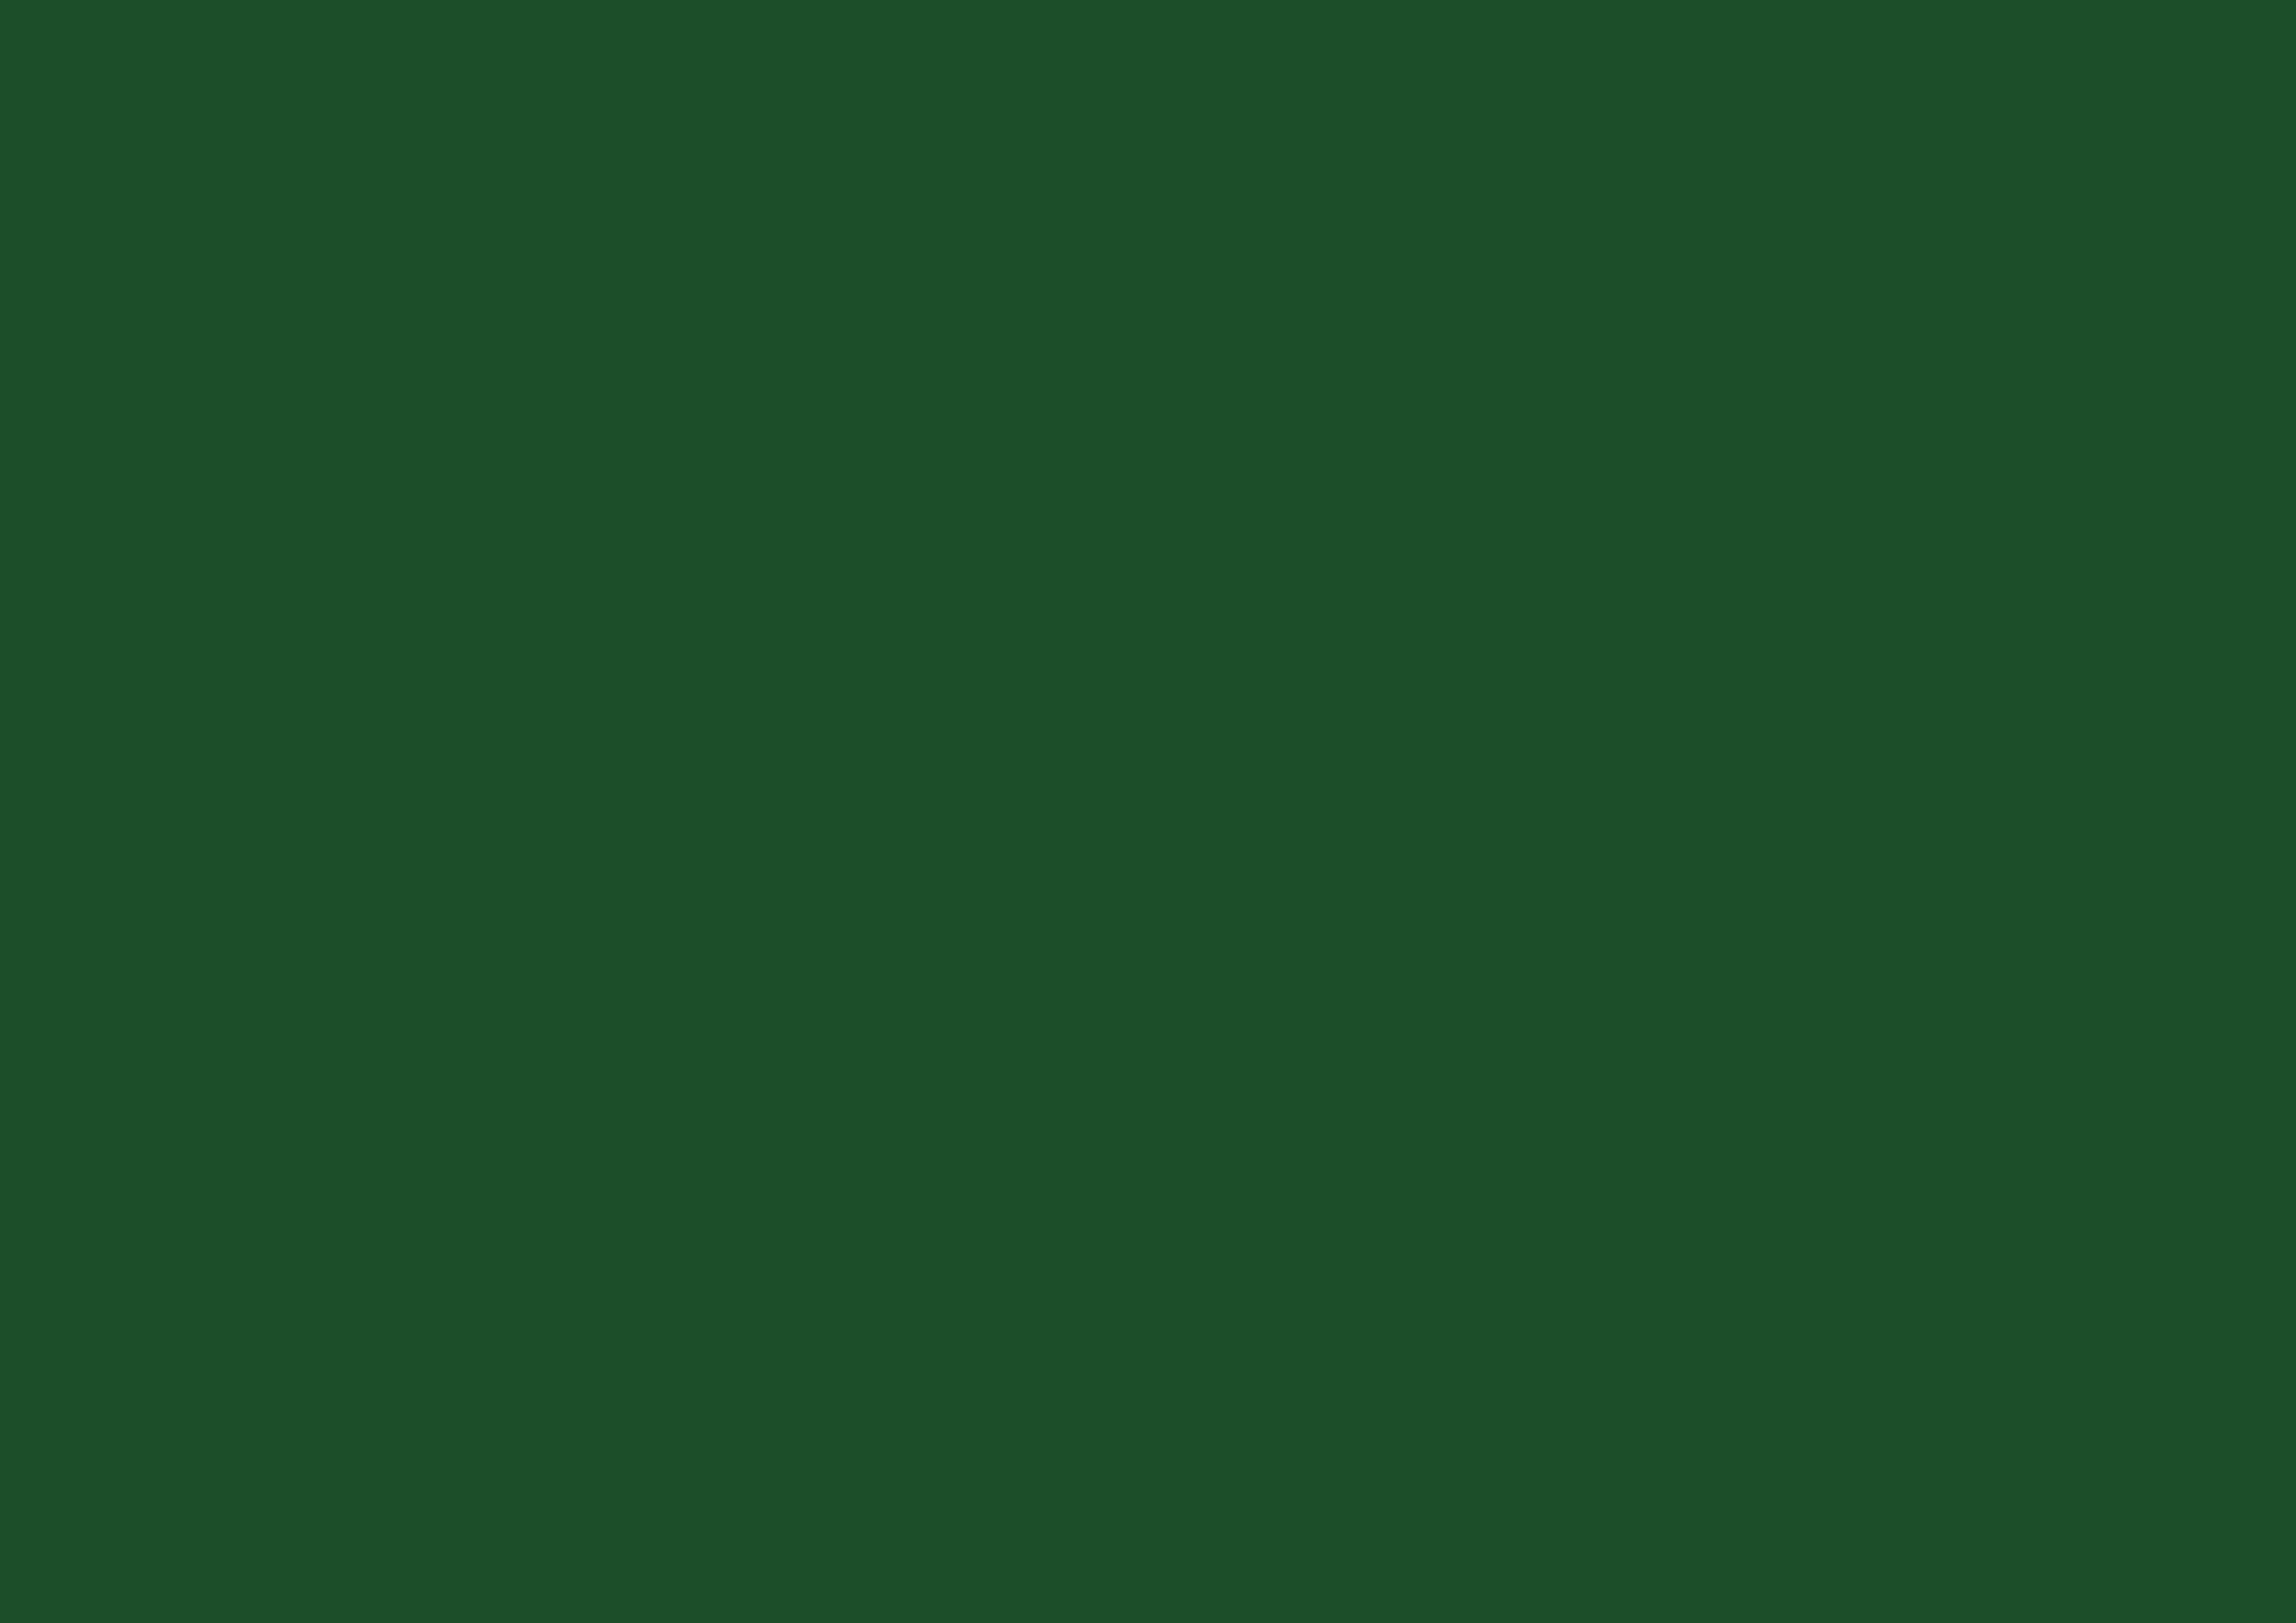 3508x2480 Cal Poly Green Solid Color Background 3508x2480